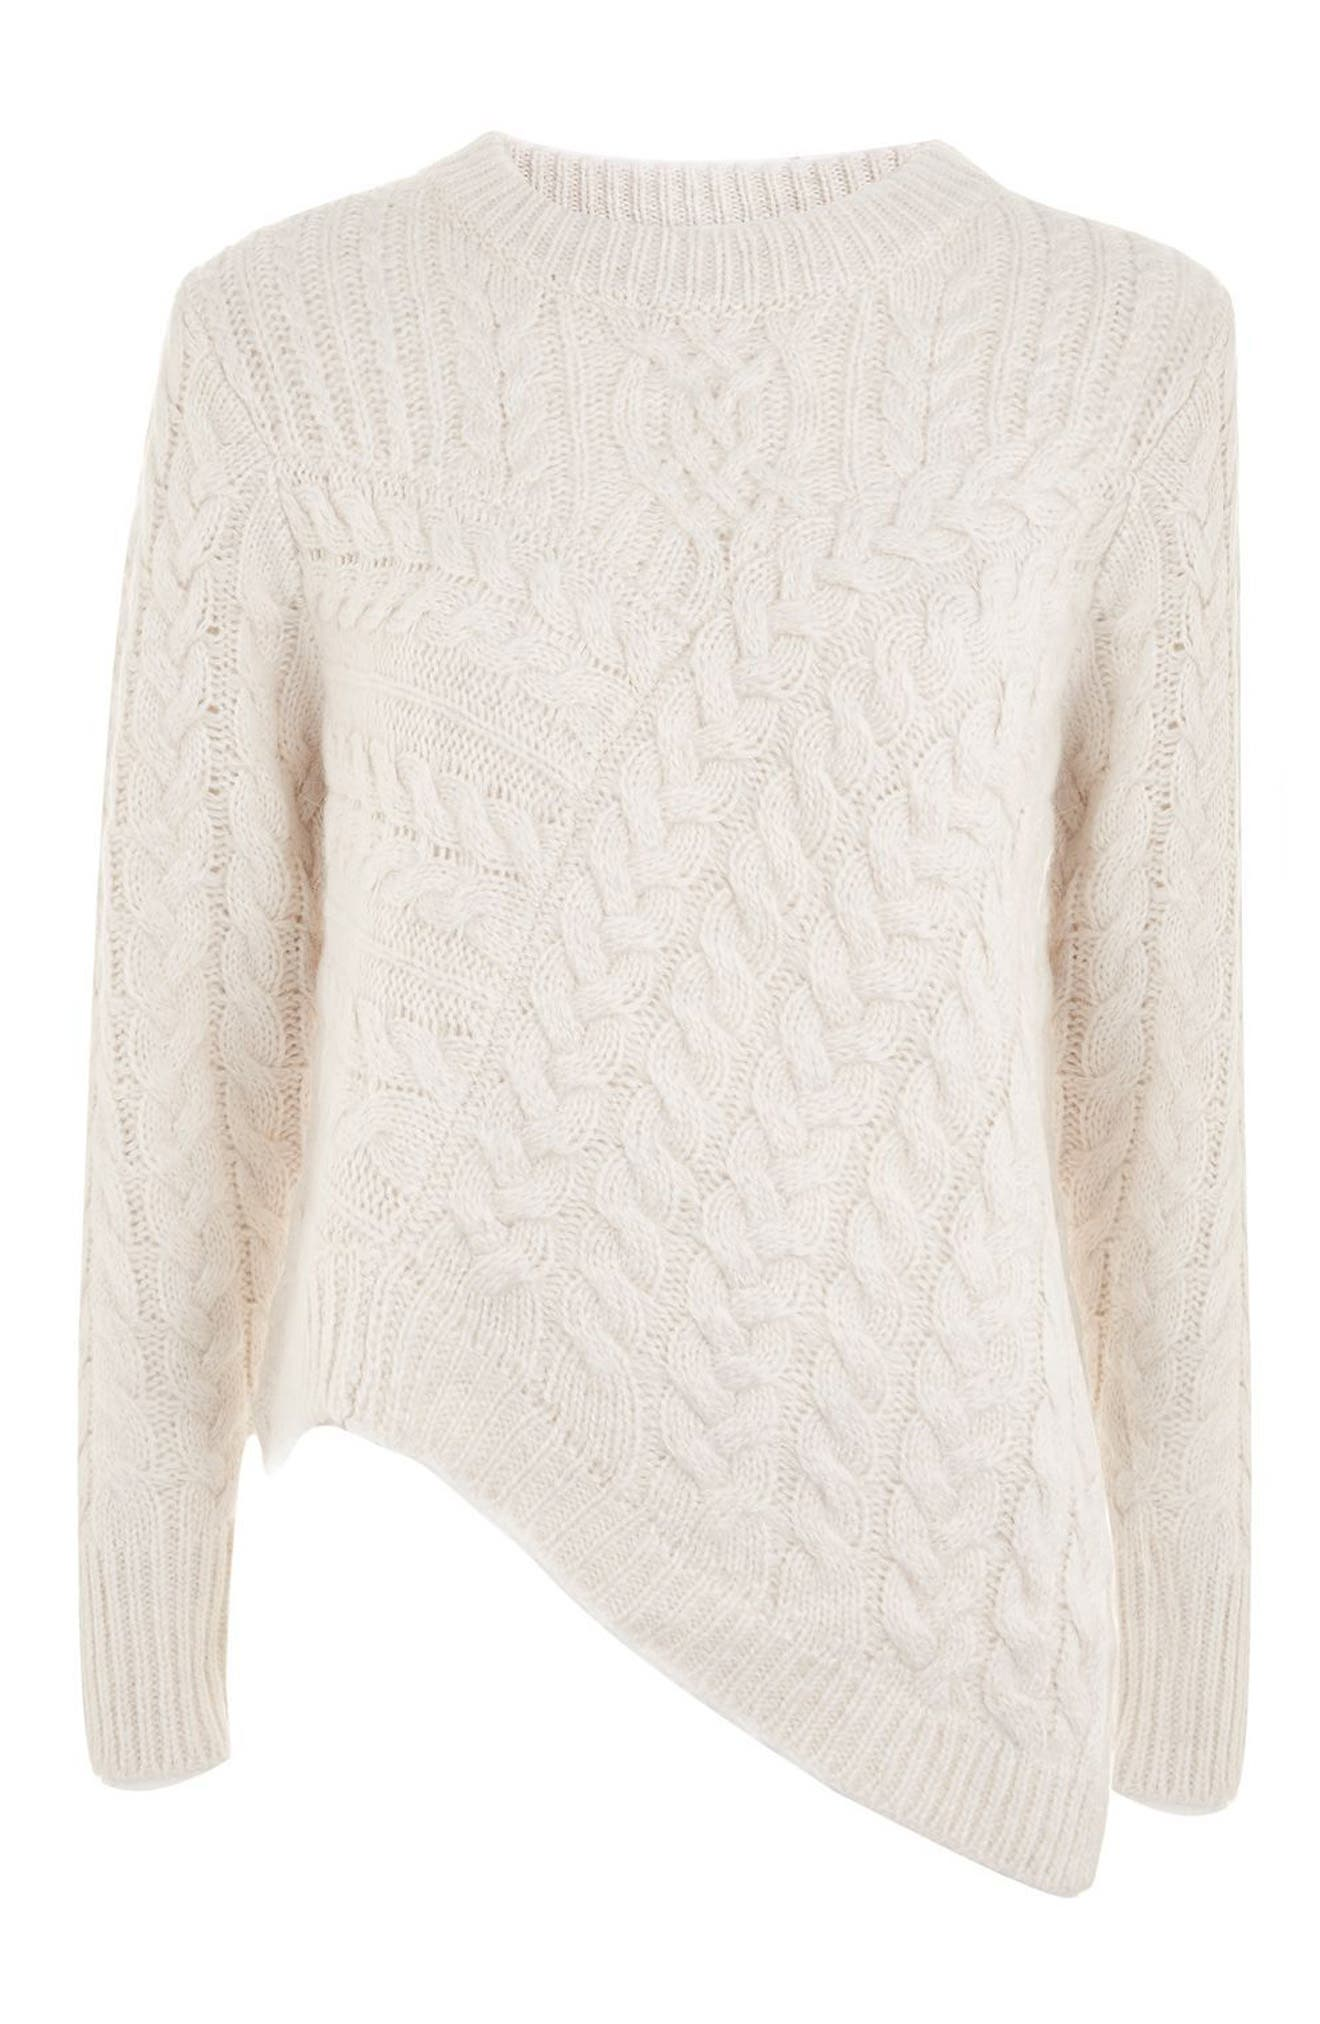 Asymmetrical Cable Knit Sweater,                             Alternate thumbnail 3, color,                             251